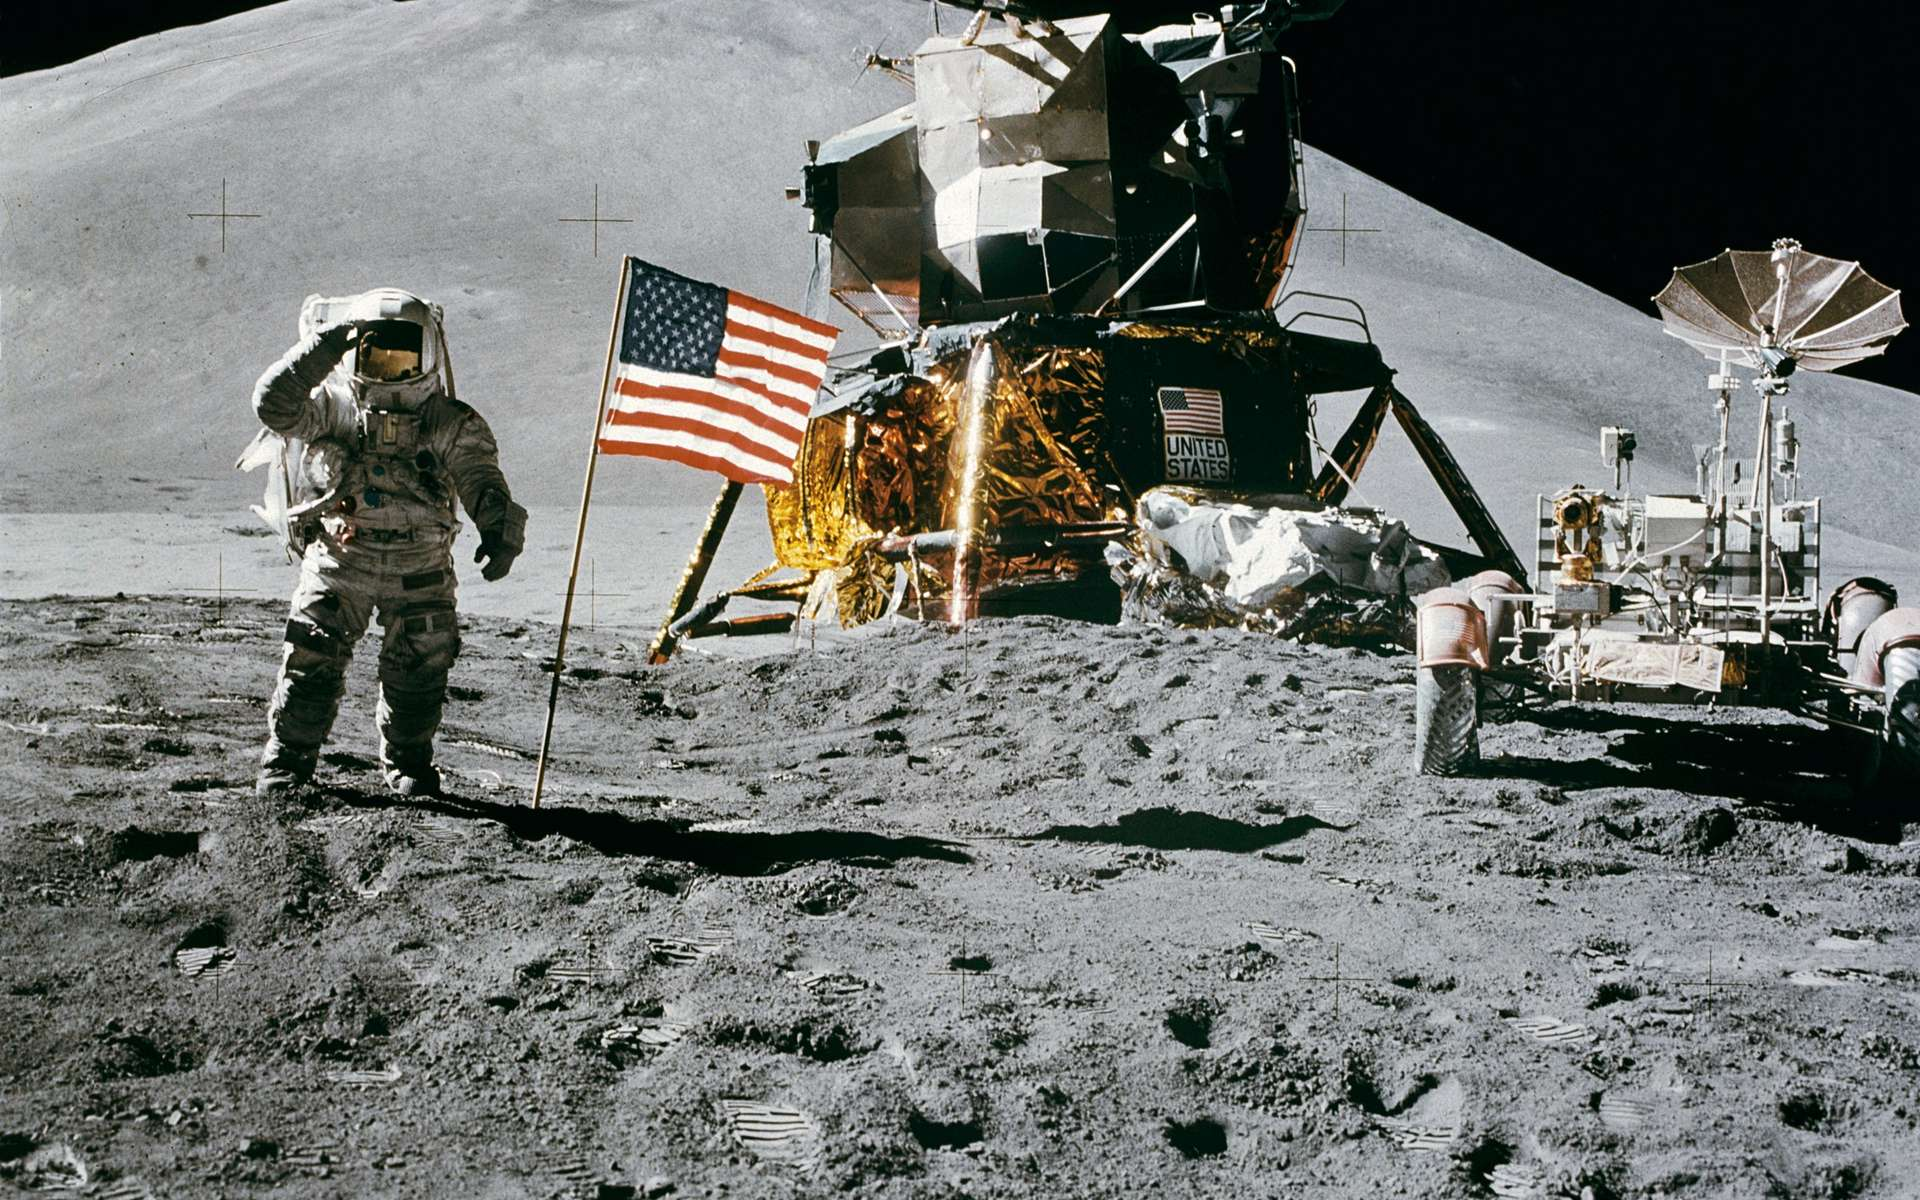 50 years ago, NASA landed a craft on the moon